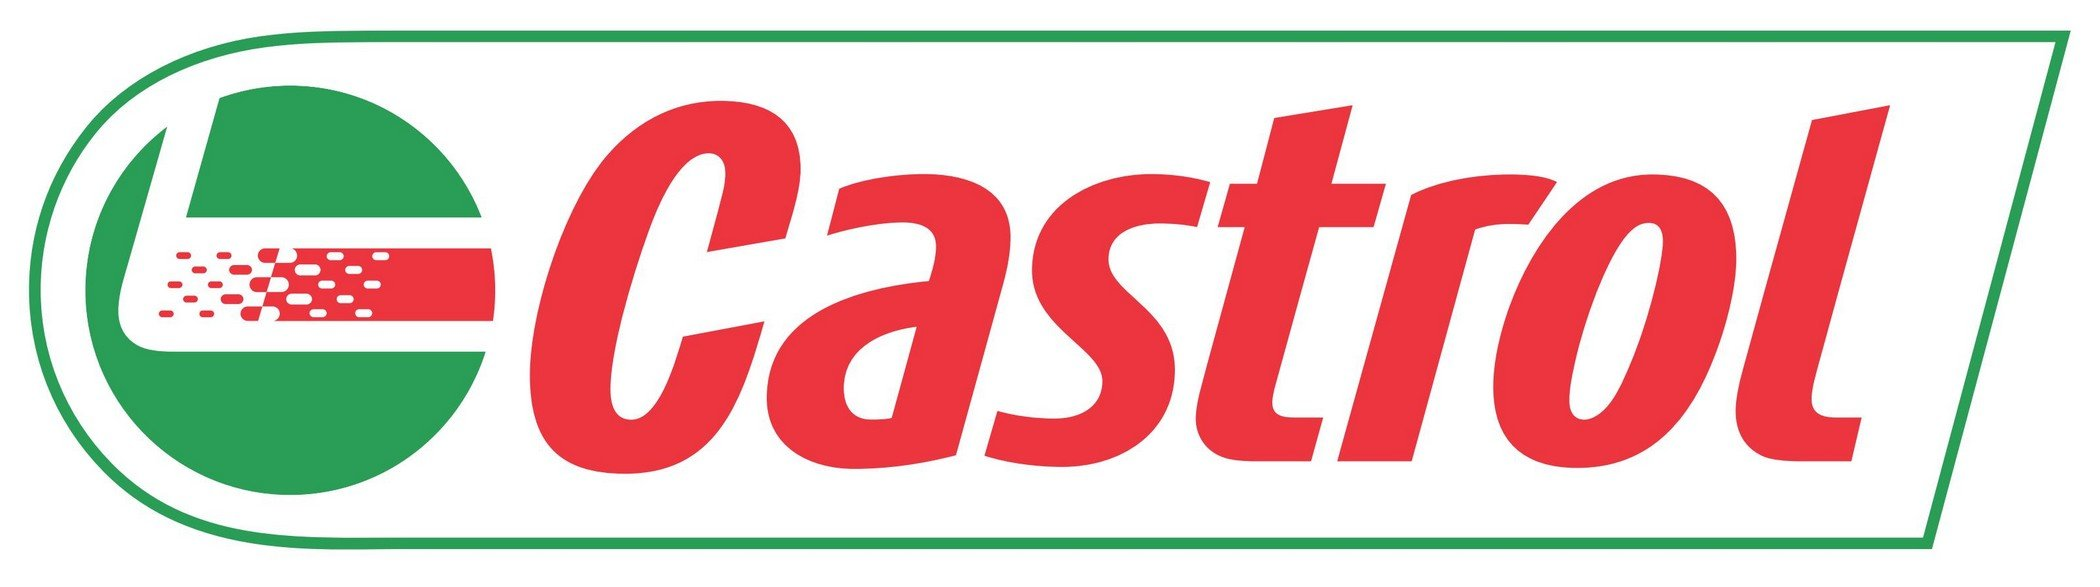 Castrol Logo Vector [EPS File] Vector EPS Free Download, Logo, Icons, Brand Emblems